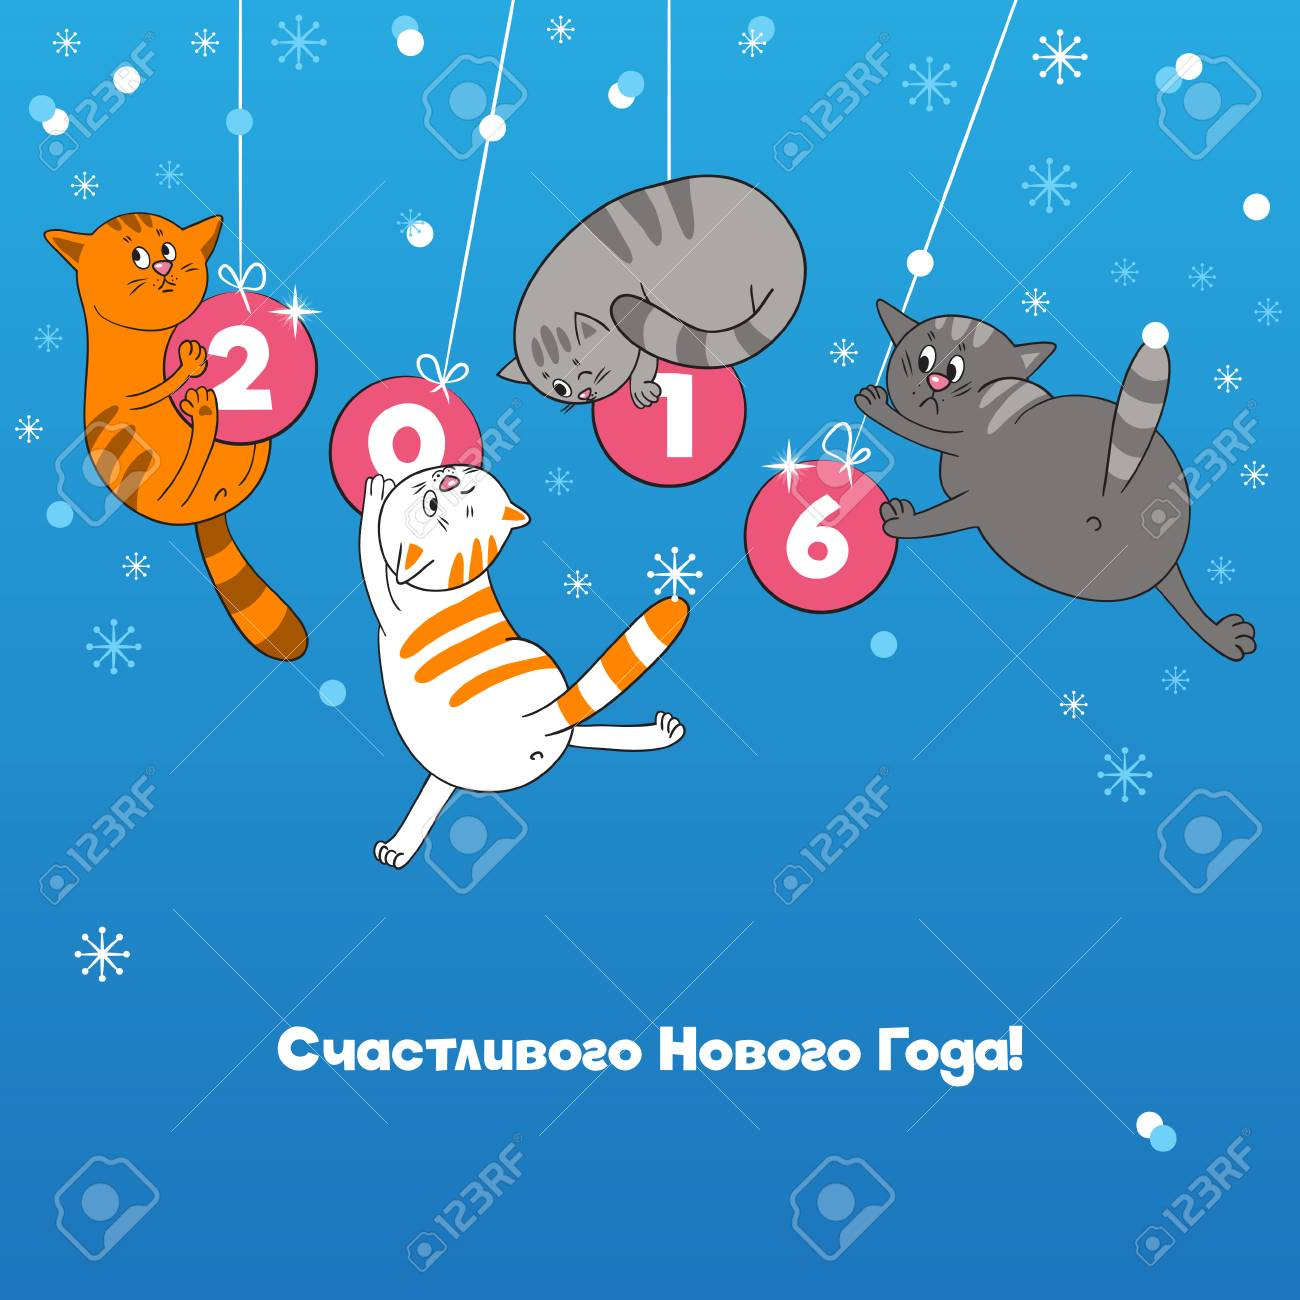 merry christmas card with christmas tree balls cats and russian text - Russian Merry Christmas